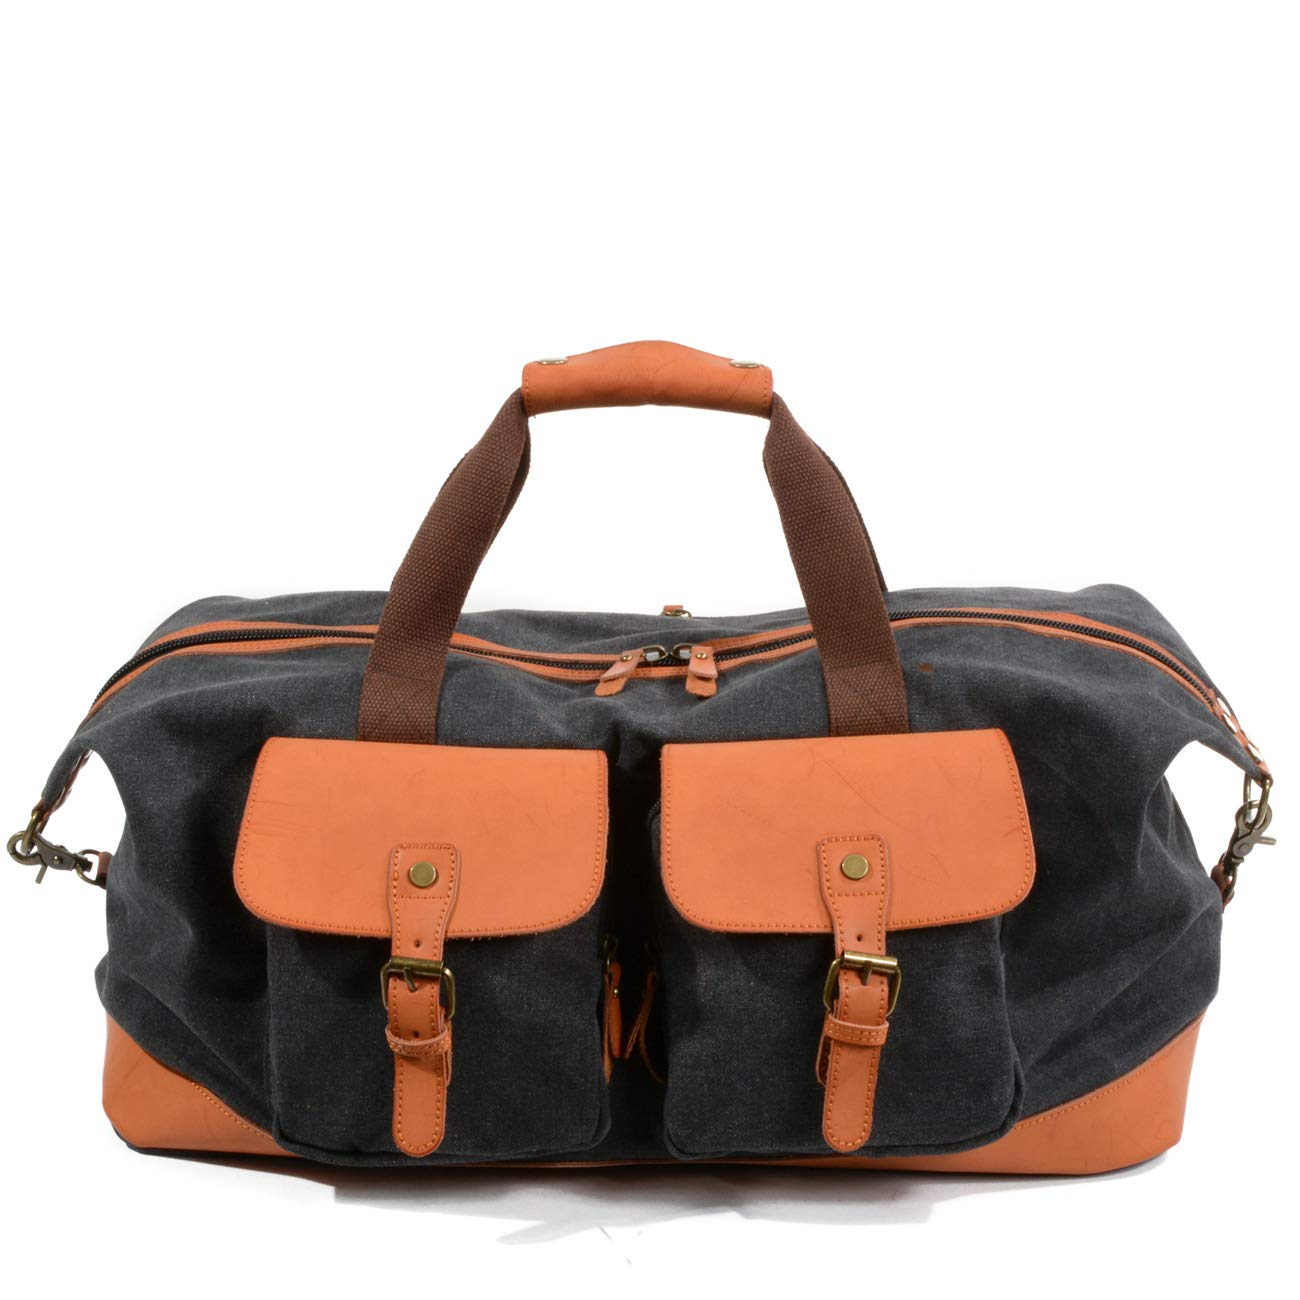 a7e2459264e Geremen Canvas Duffle Bag Leather Weekend Bag Carry On Travel Bag ...